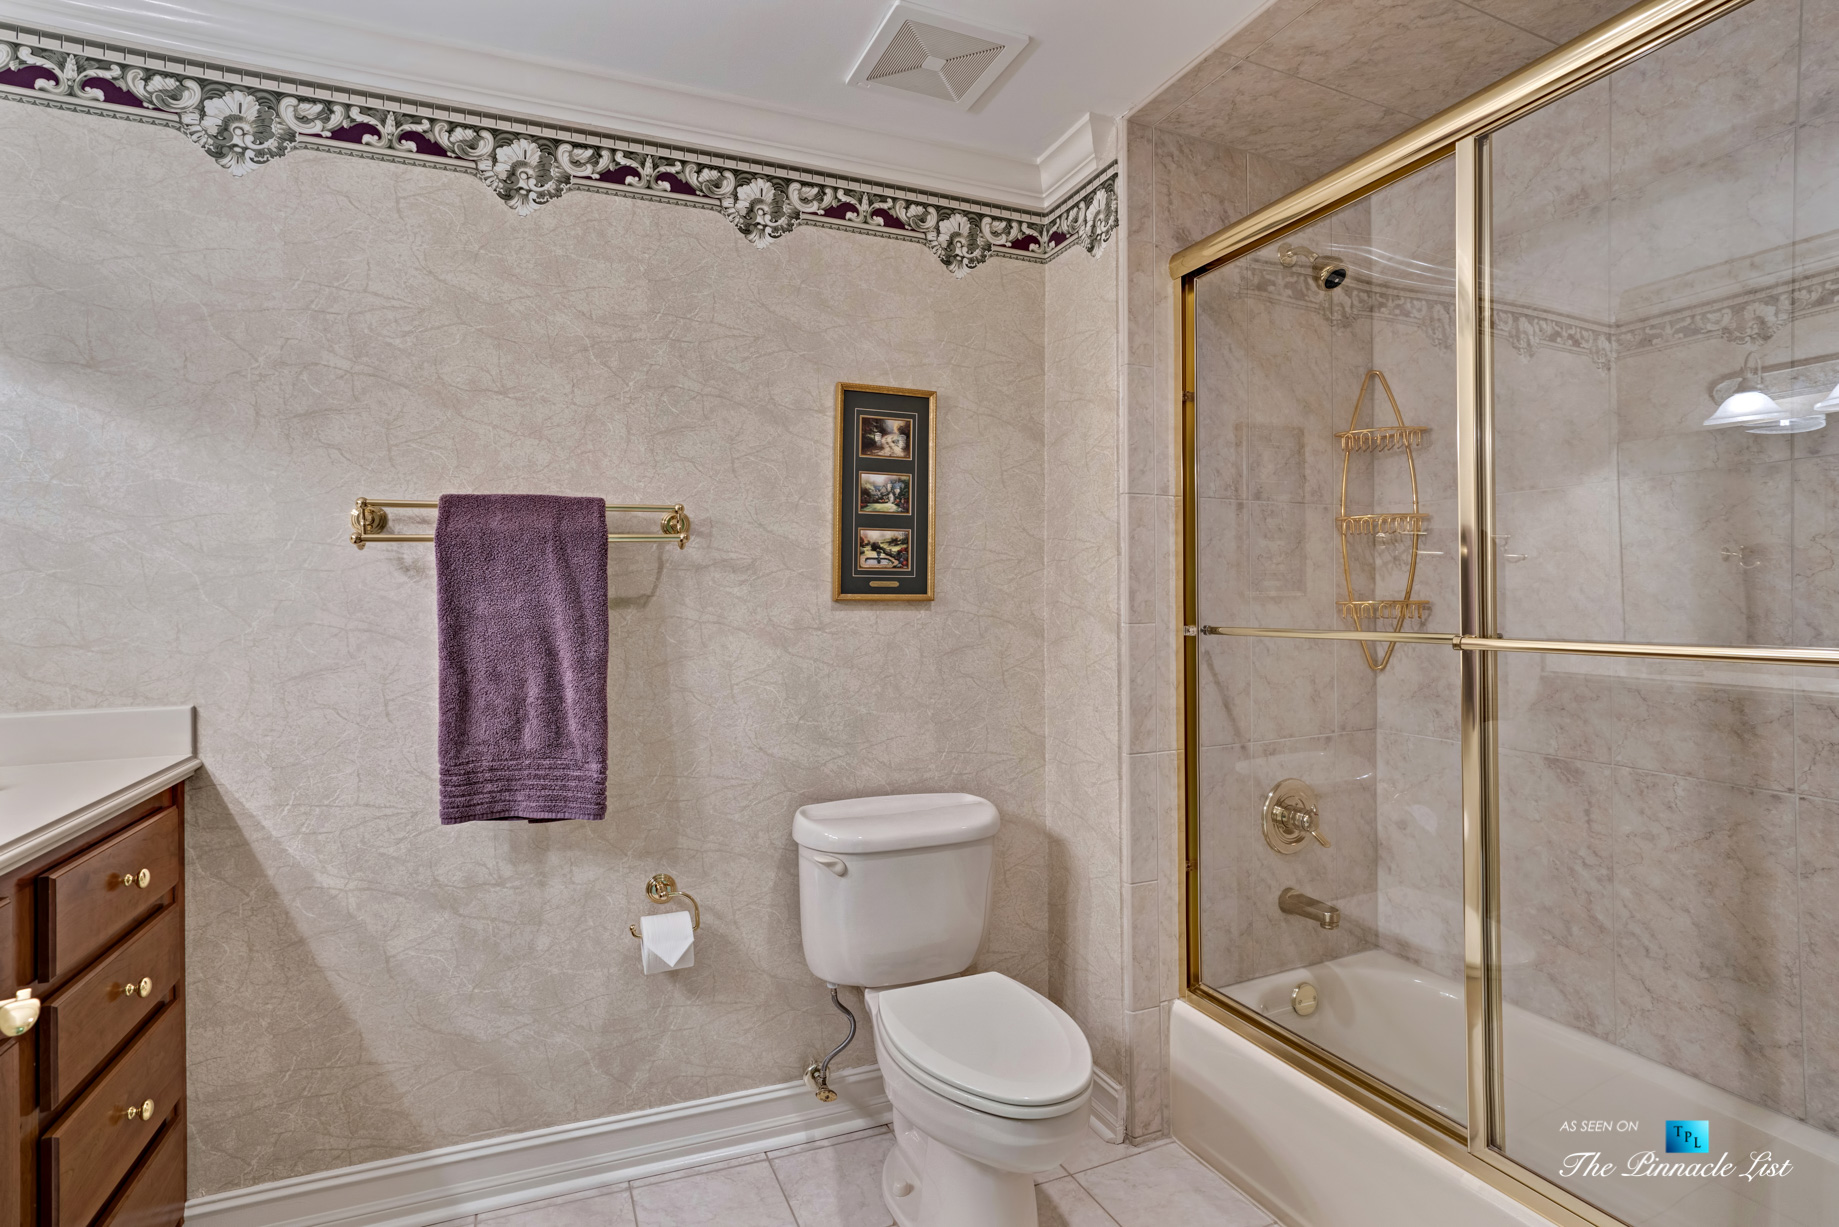 2219 Costley Mill Rd NE, Conyers, GA, USA - Bathroom - Luxury Real Estate - Equestrian Country Home